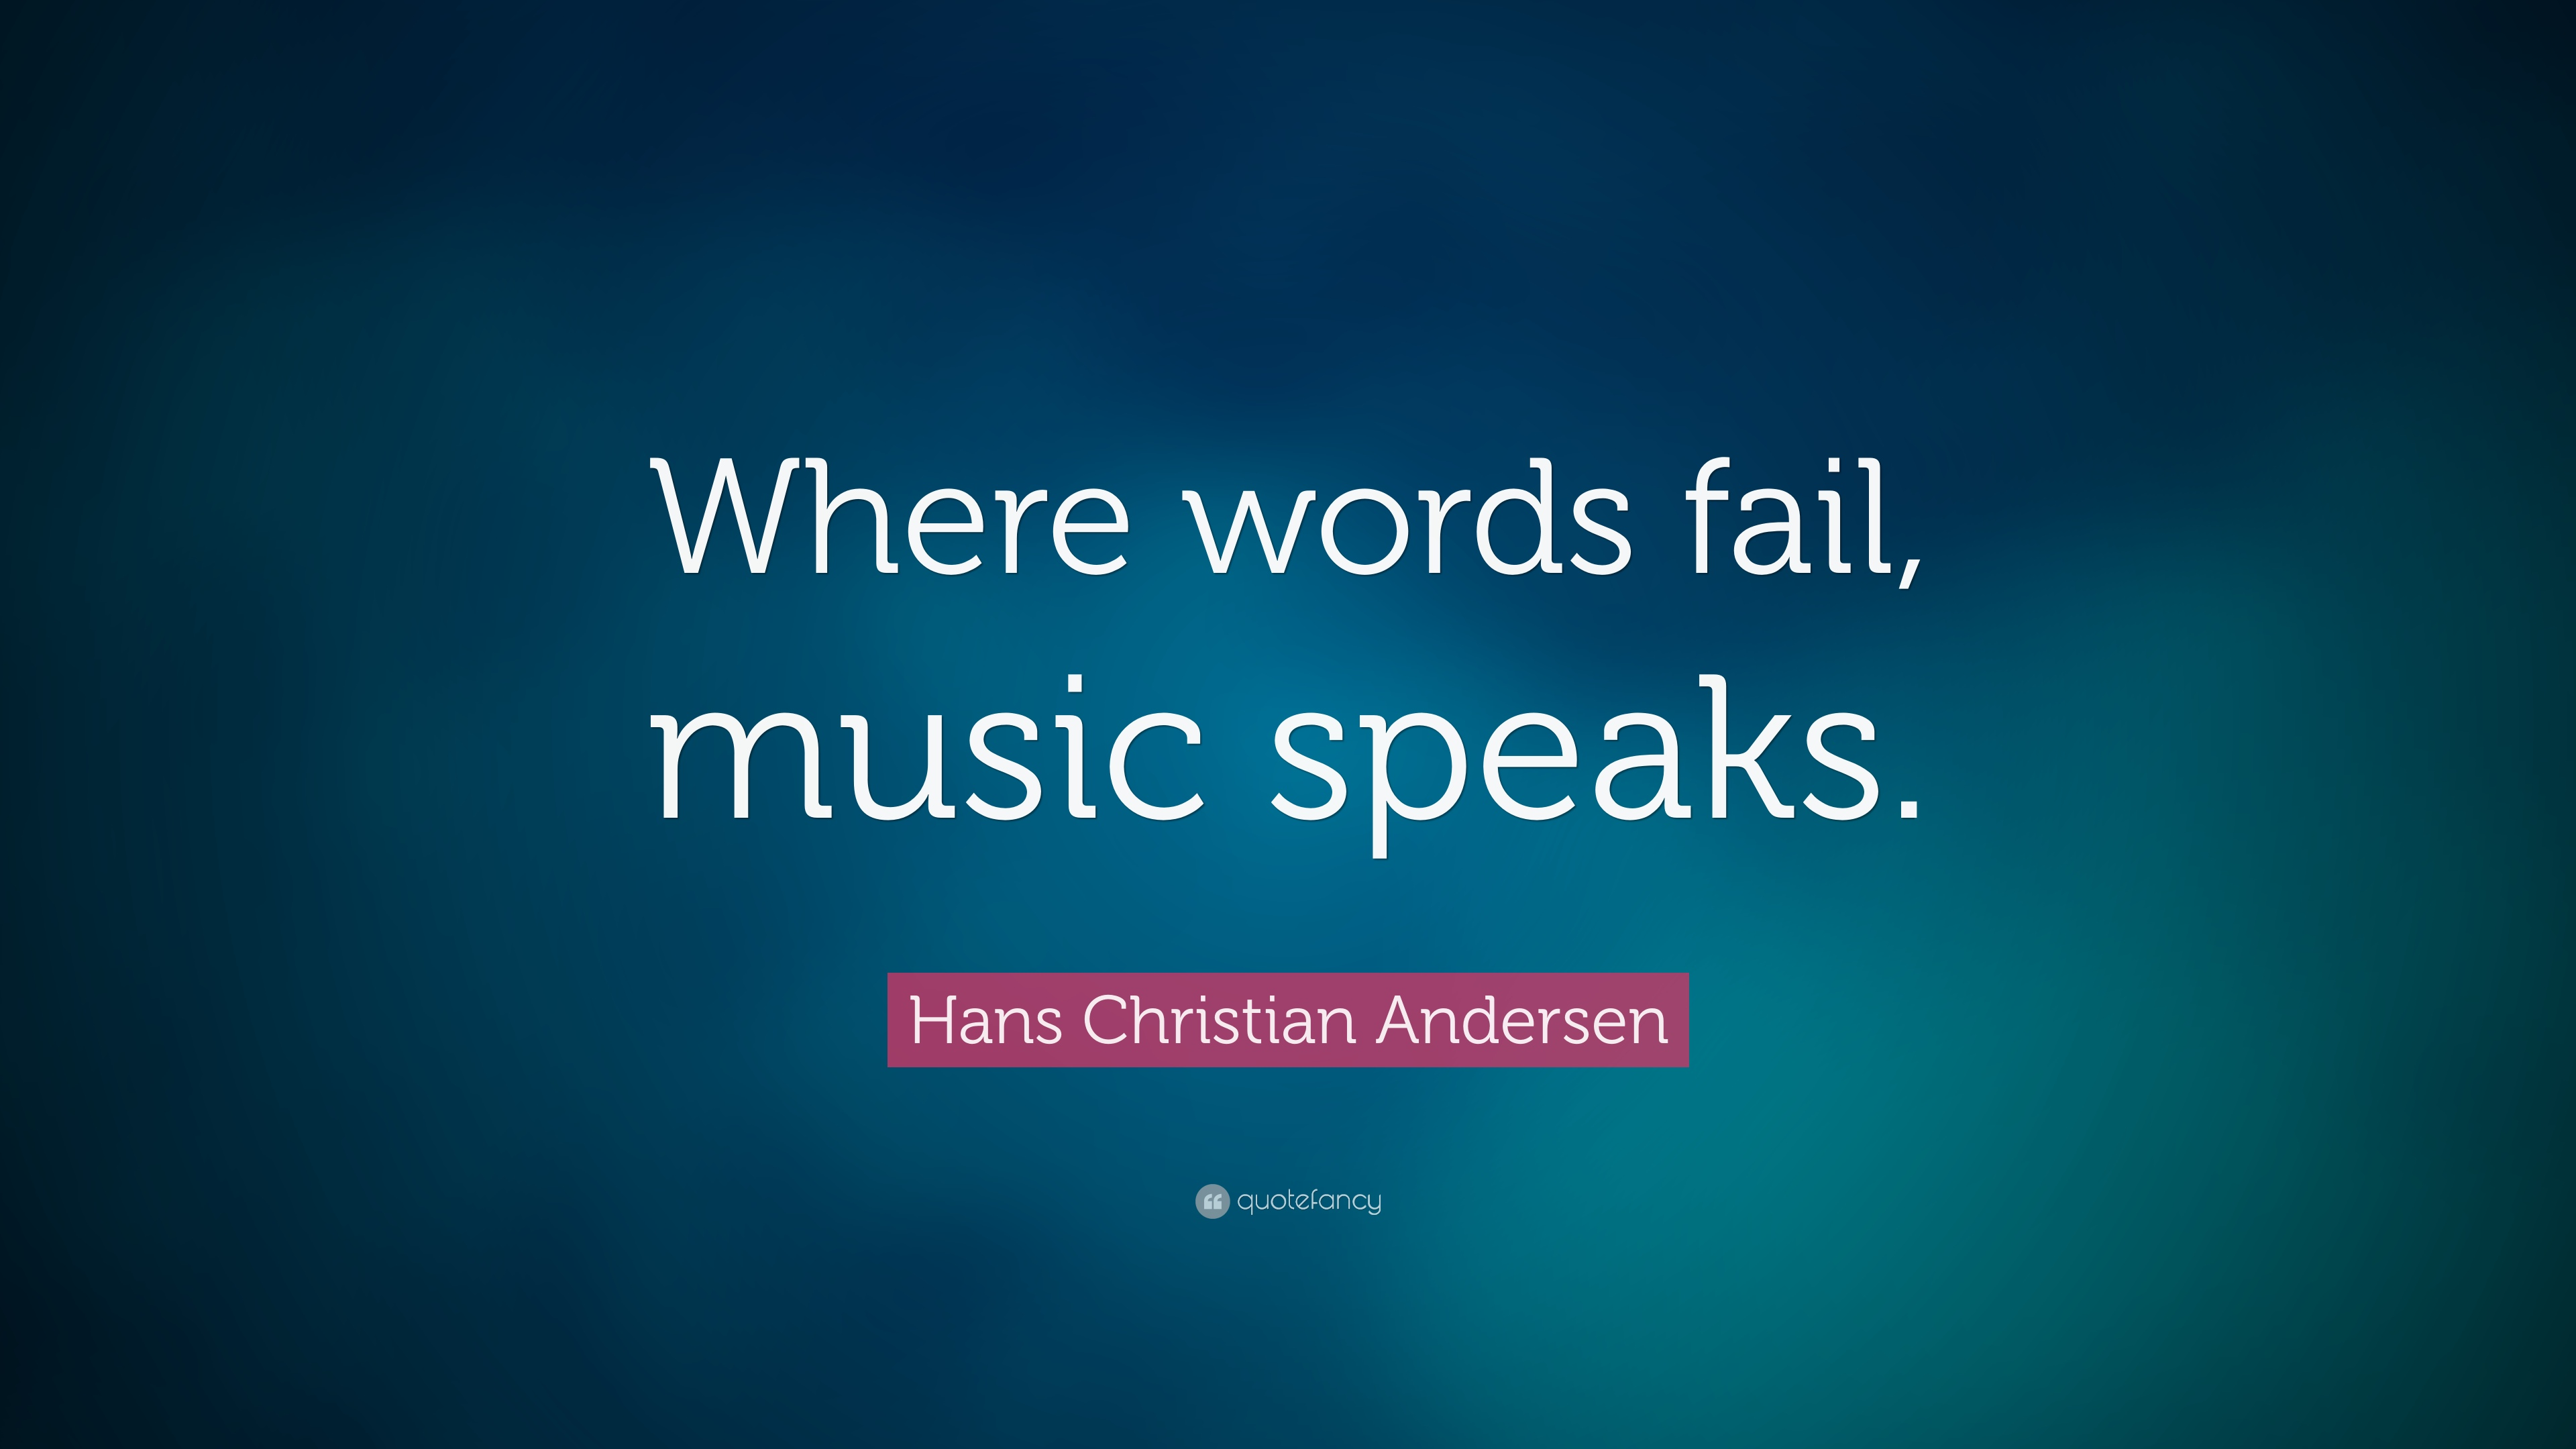 Marvelous Hans Christian Andersen Quote: U201cWhere Words Fail, Music Speaks.u201d